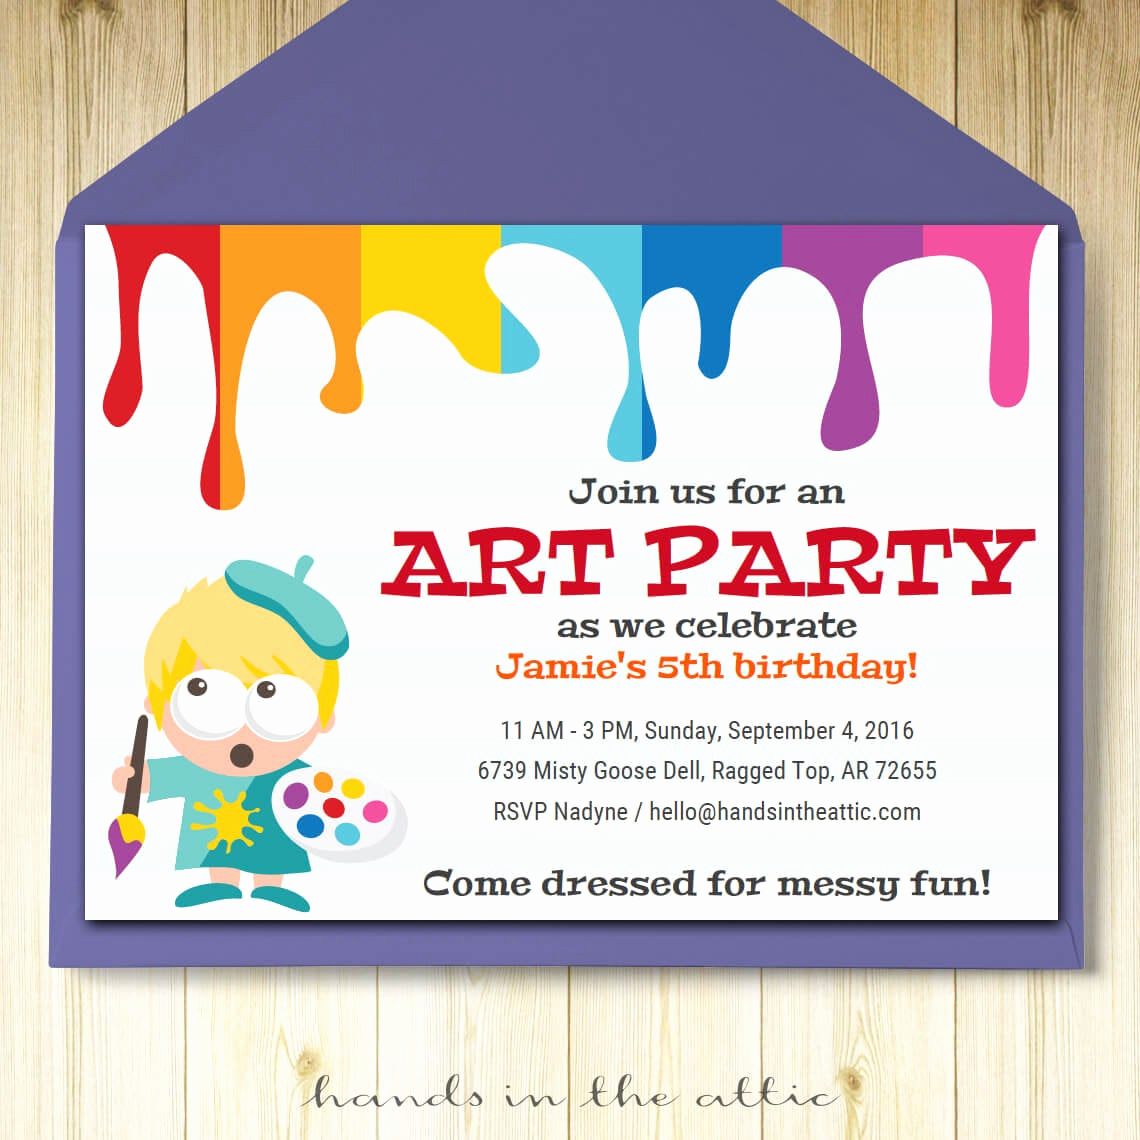 Favorite Things Party Invitation Template Beautiful Art Party Invitation Card Template Printable Kids Painting